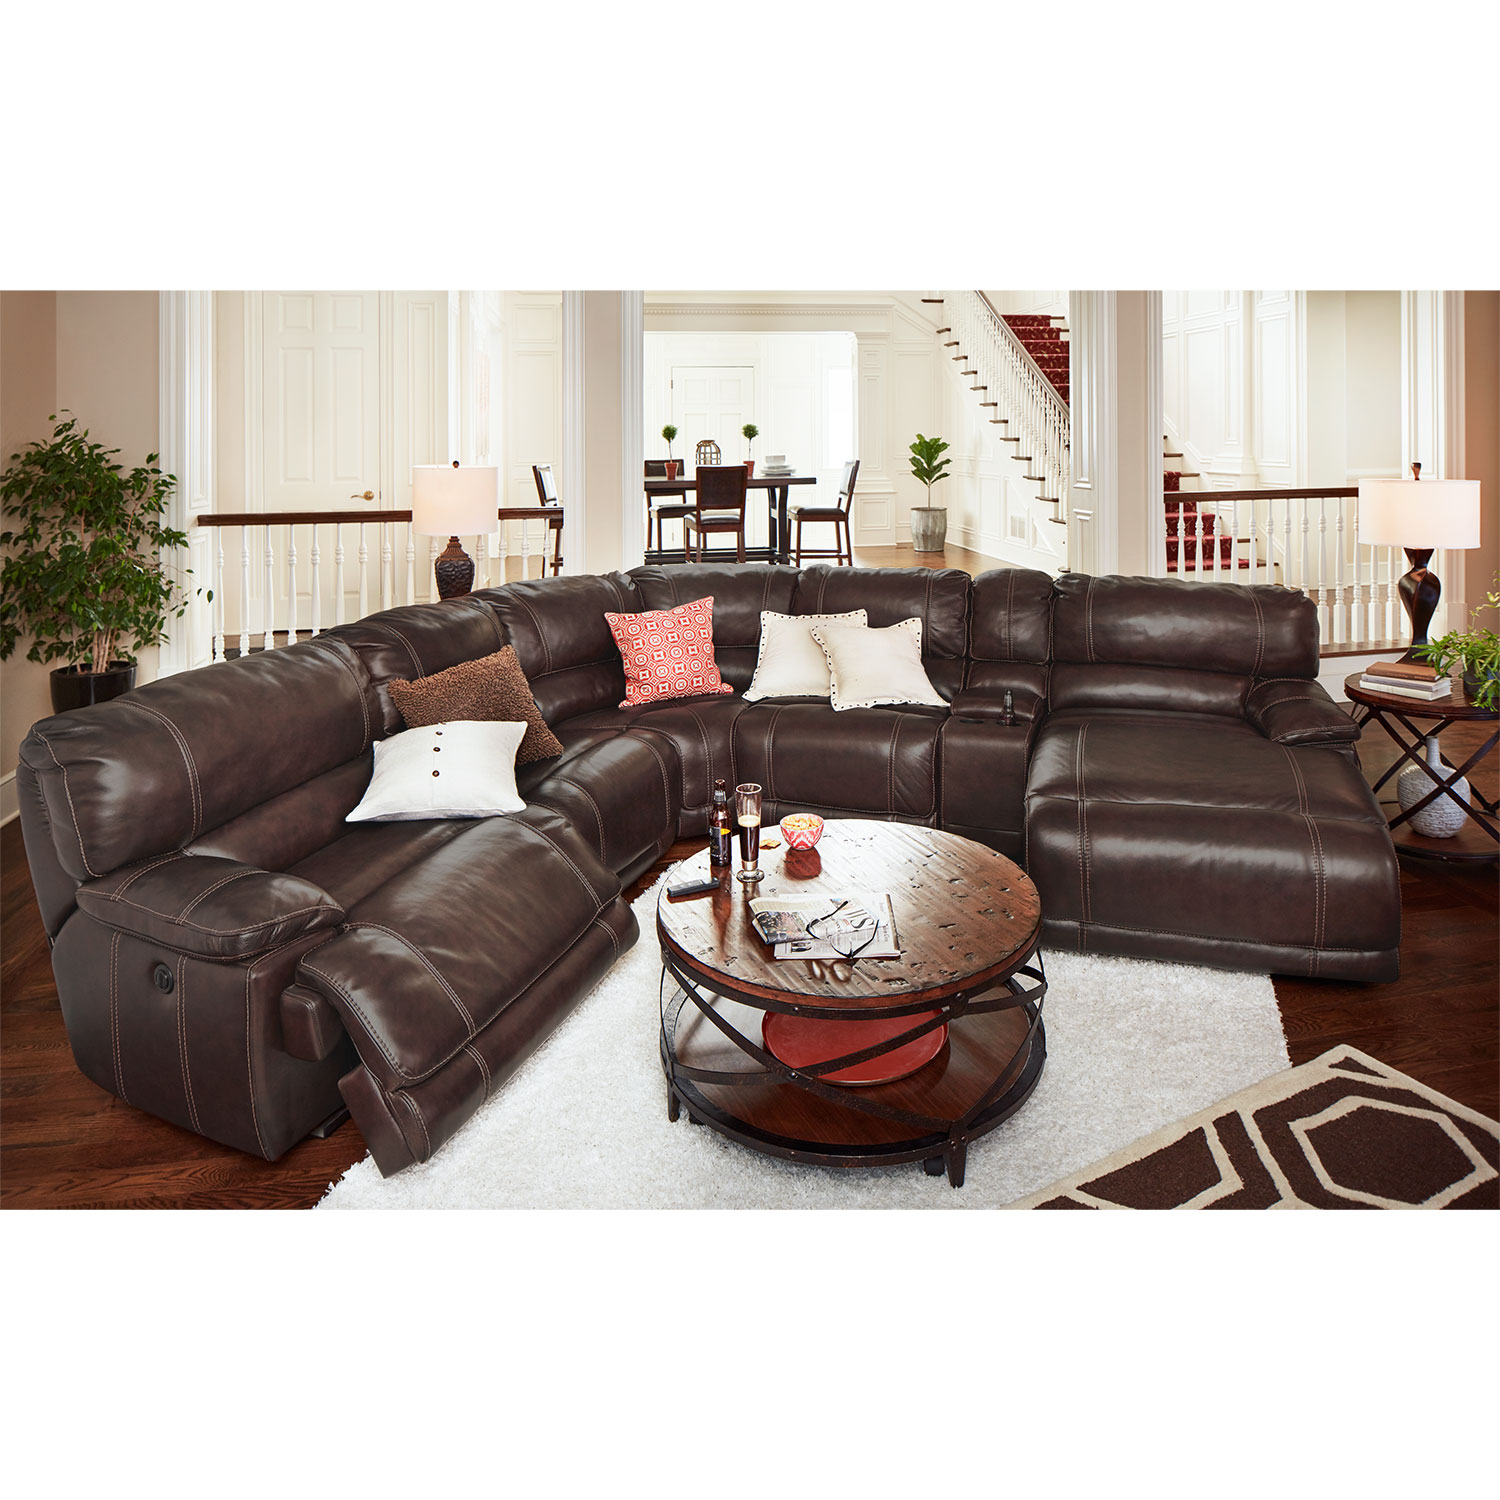 Recliner sectional lugar 3 piece bonded leather reclining for Brighton taupe 3 piece chaise and sofa set